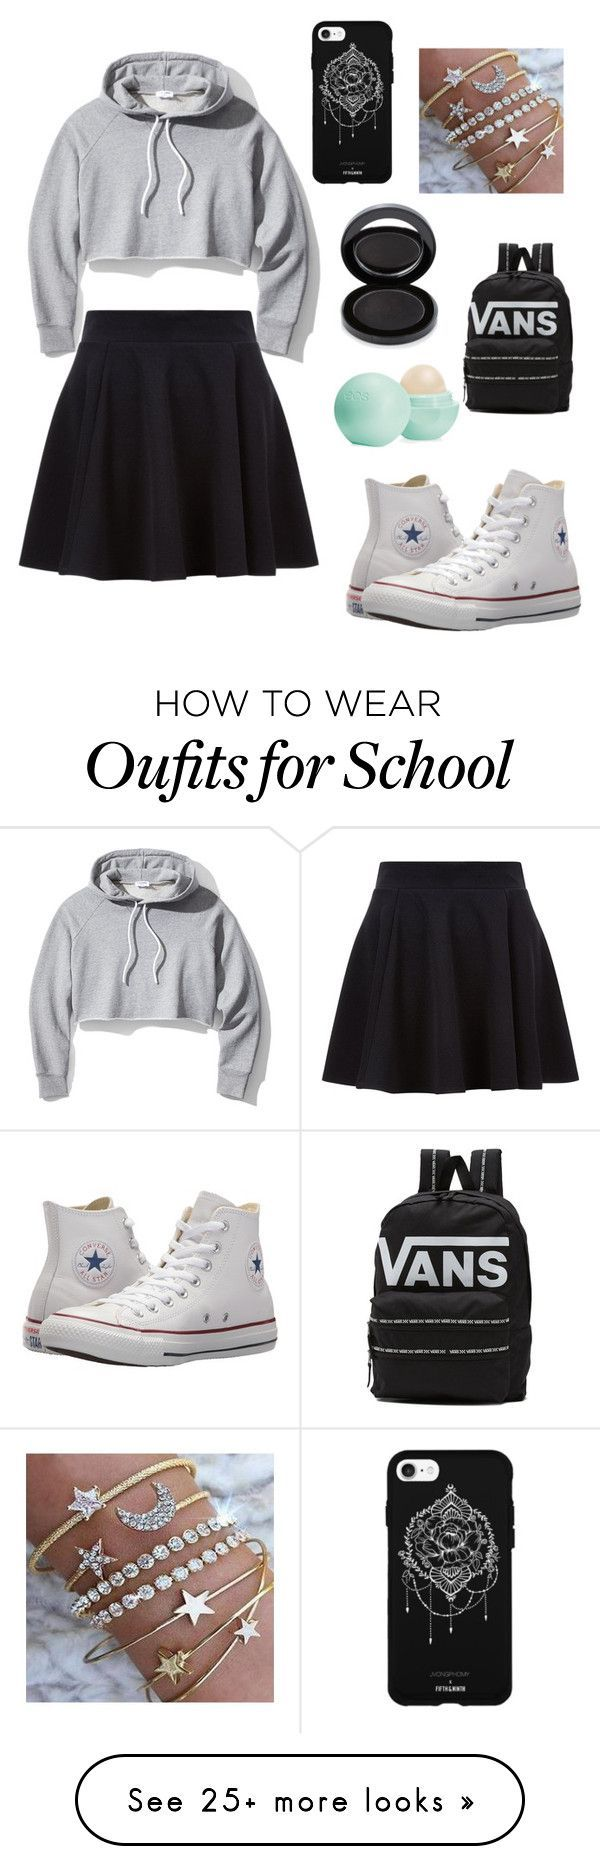 """Cute school outfit"" by alphamew on Polyvore featuring Frame, Converse, Vans, Eos, Fifth & Ninth and Lipstick Queen"